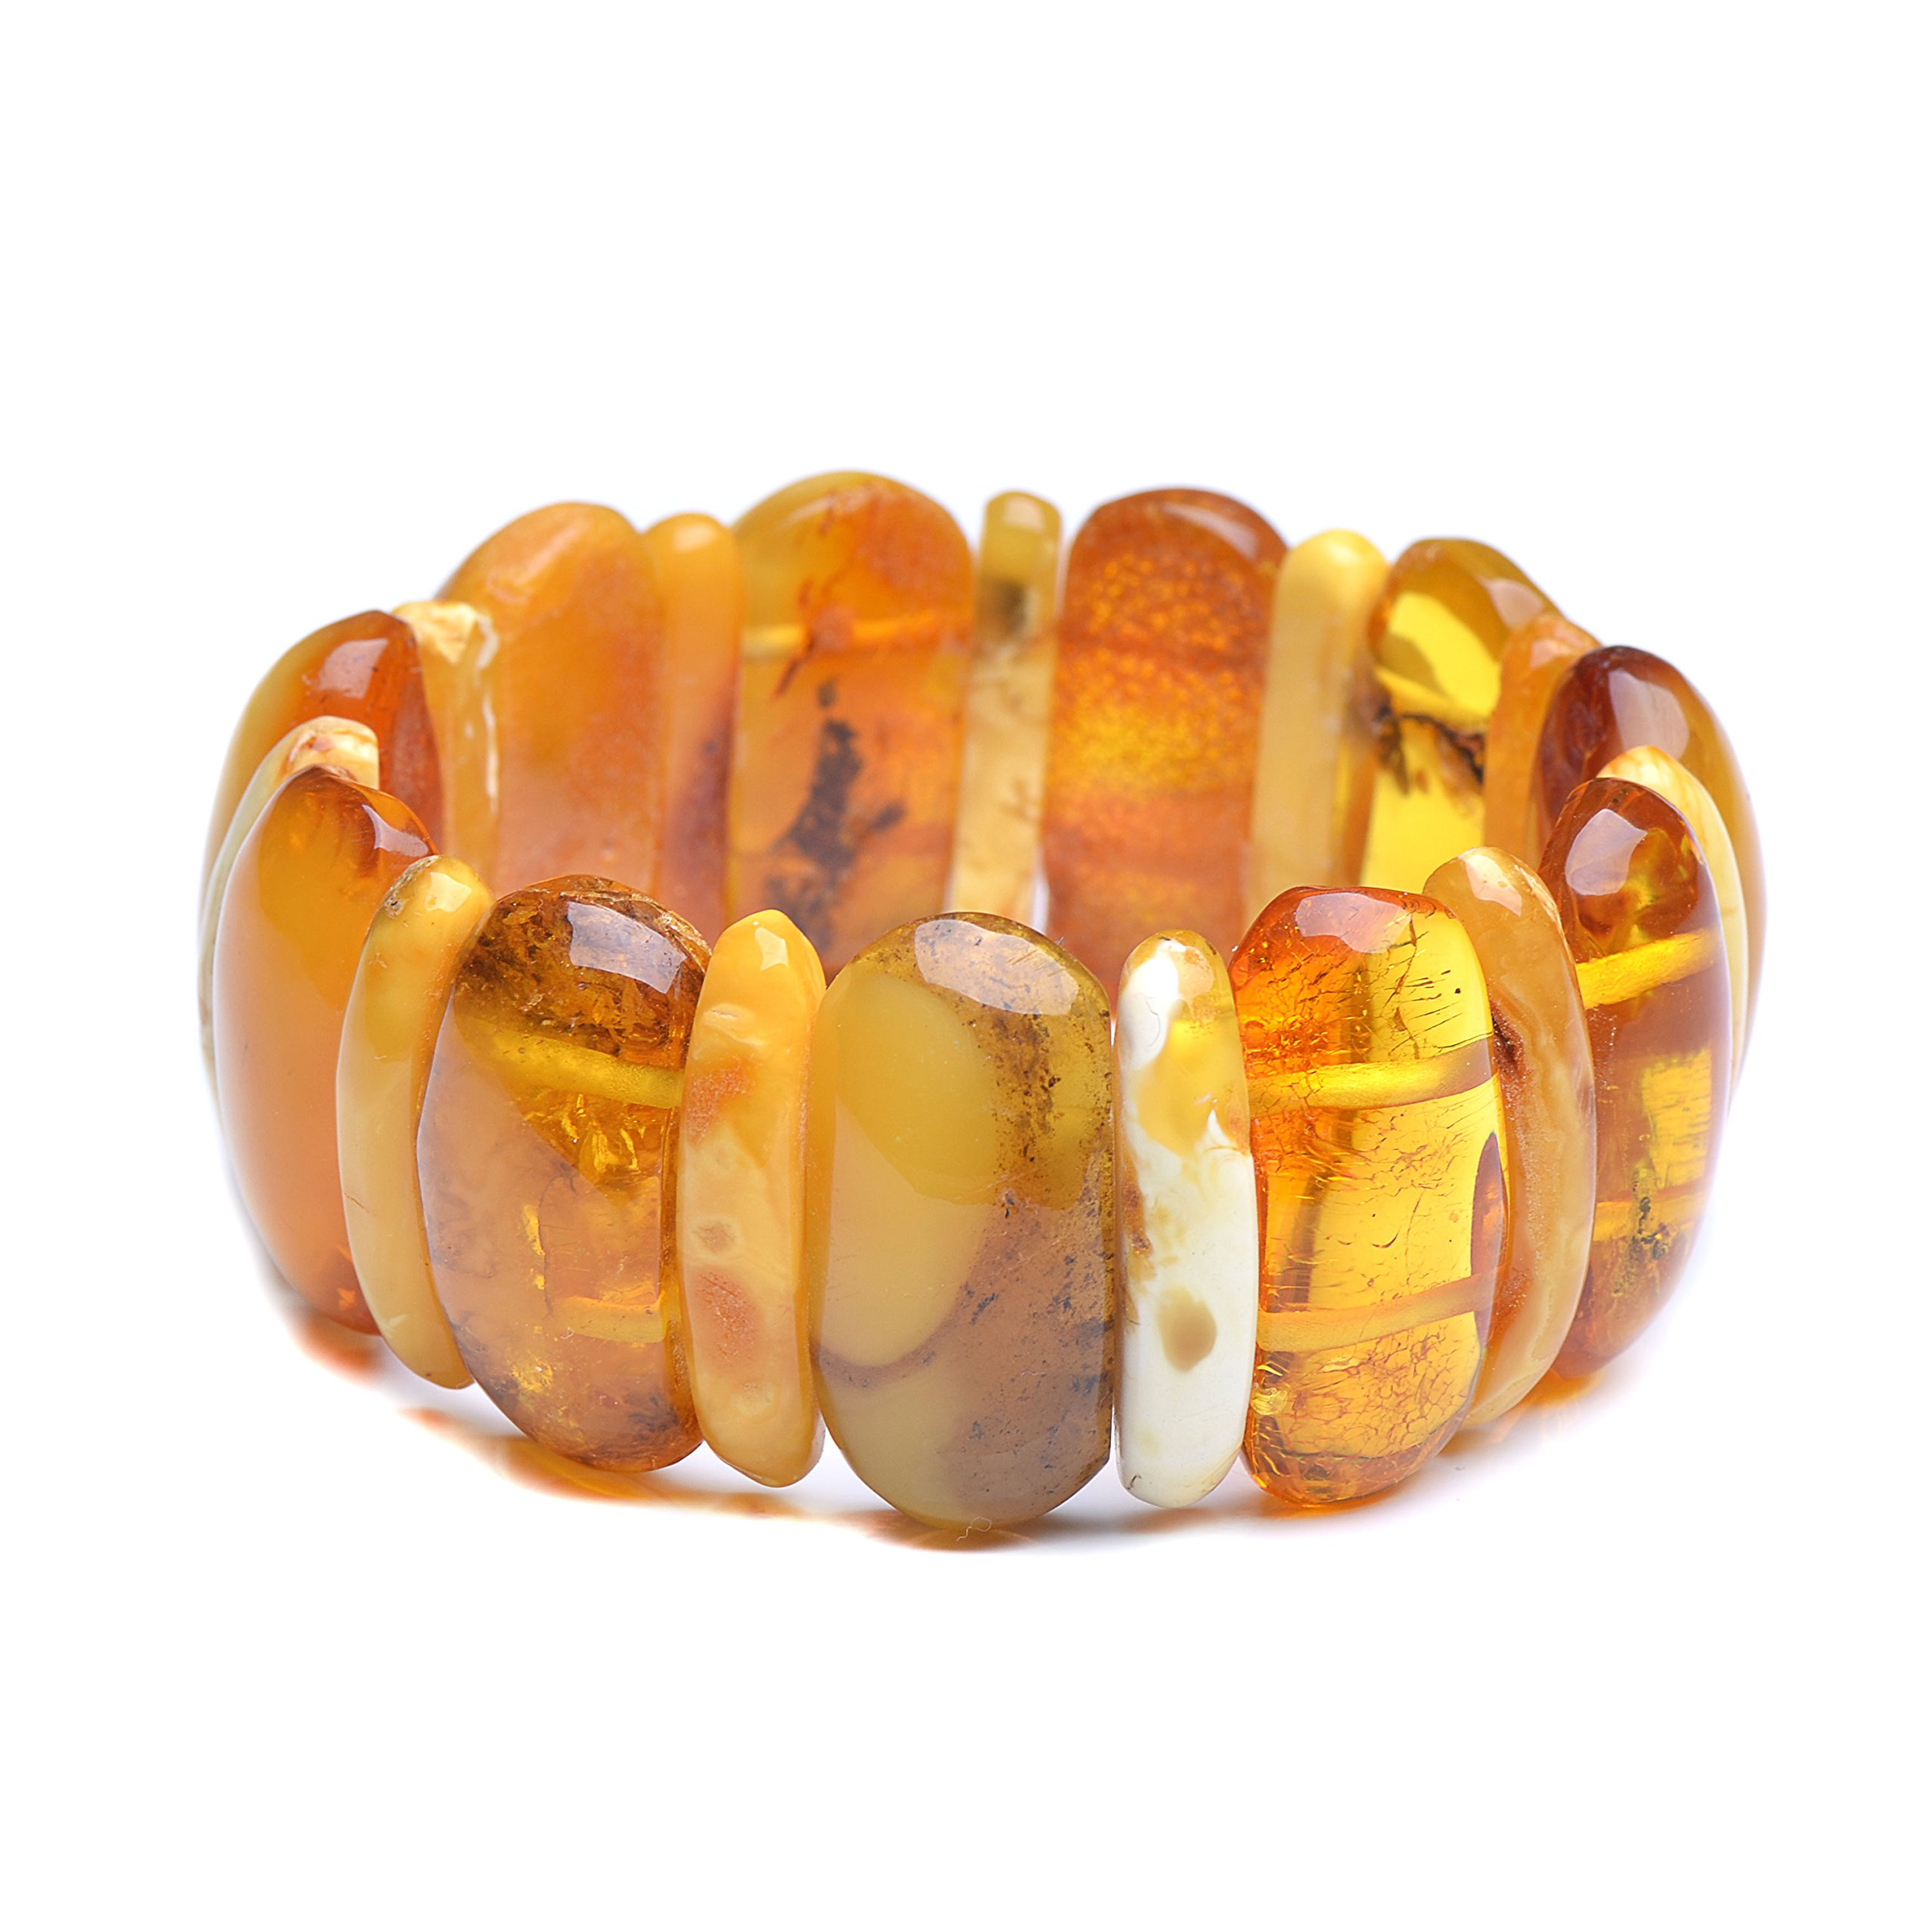 Vintage Amber Bracelet - Unique Amber Bracelet - Certified Handmade Amber Bracelet - Genuine Amber Bracelet (7.9 inches, Butterscotch) by Genuine Amber